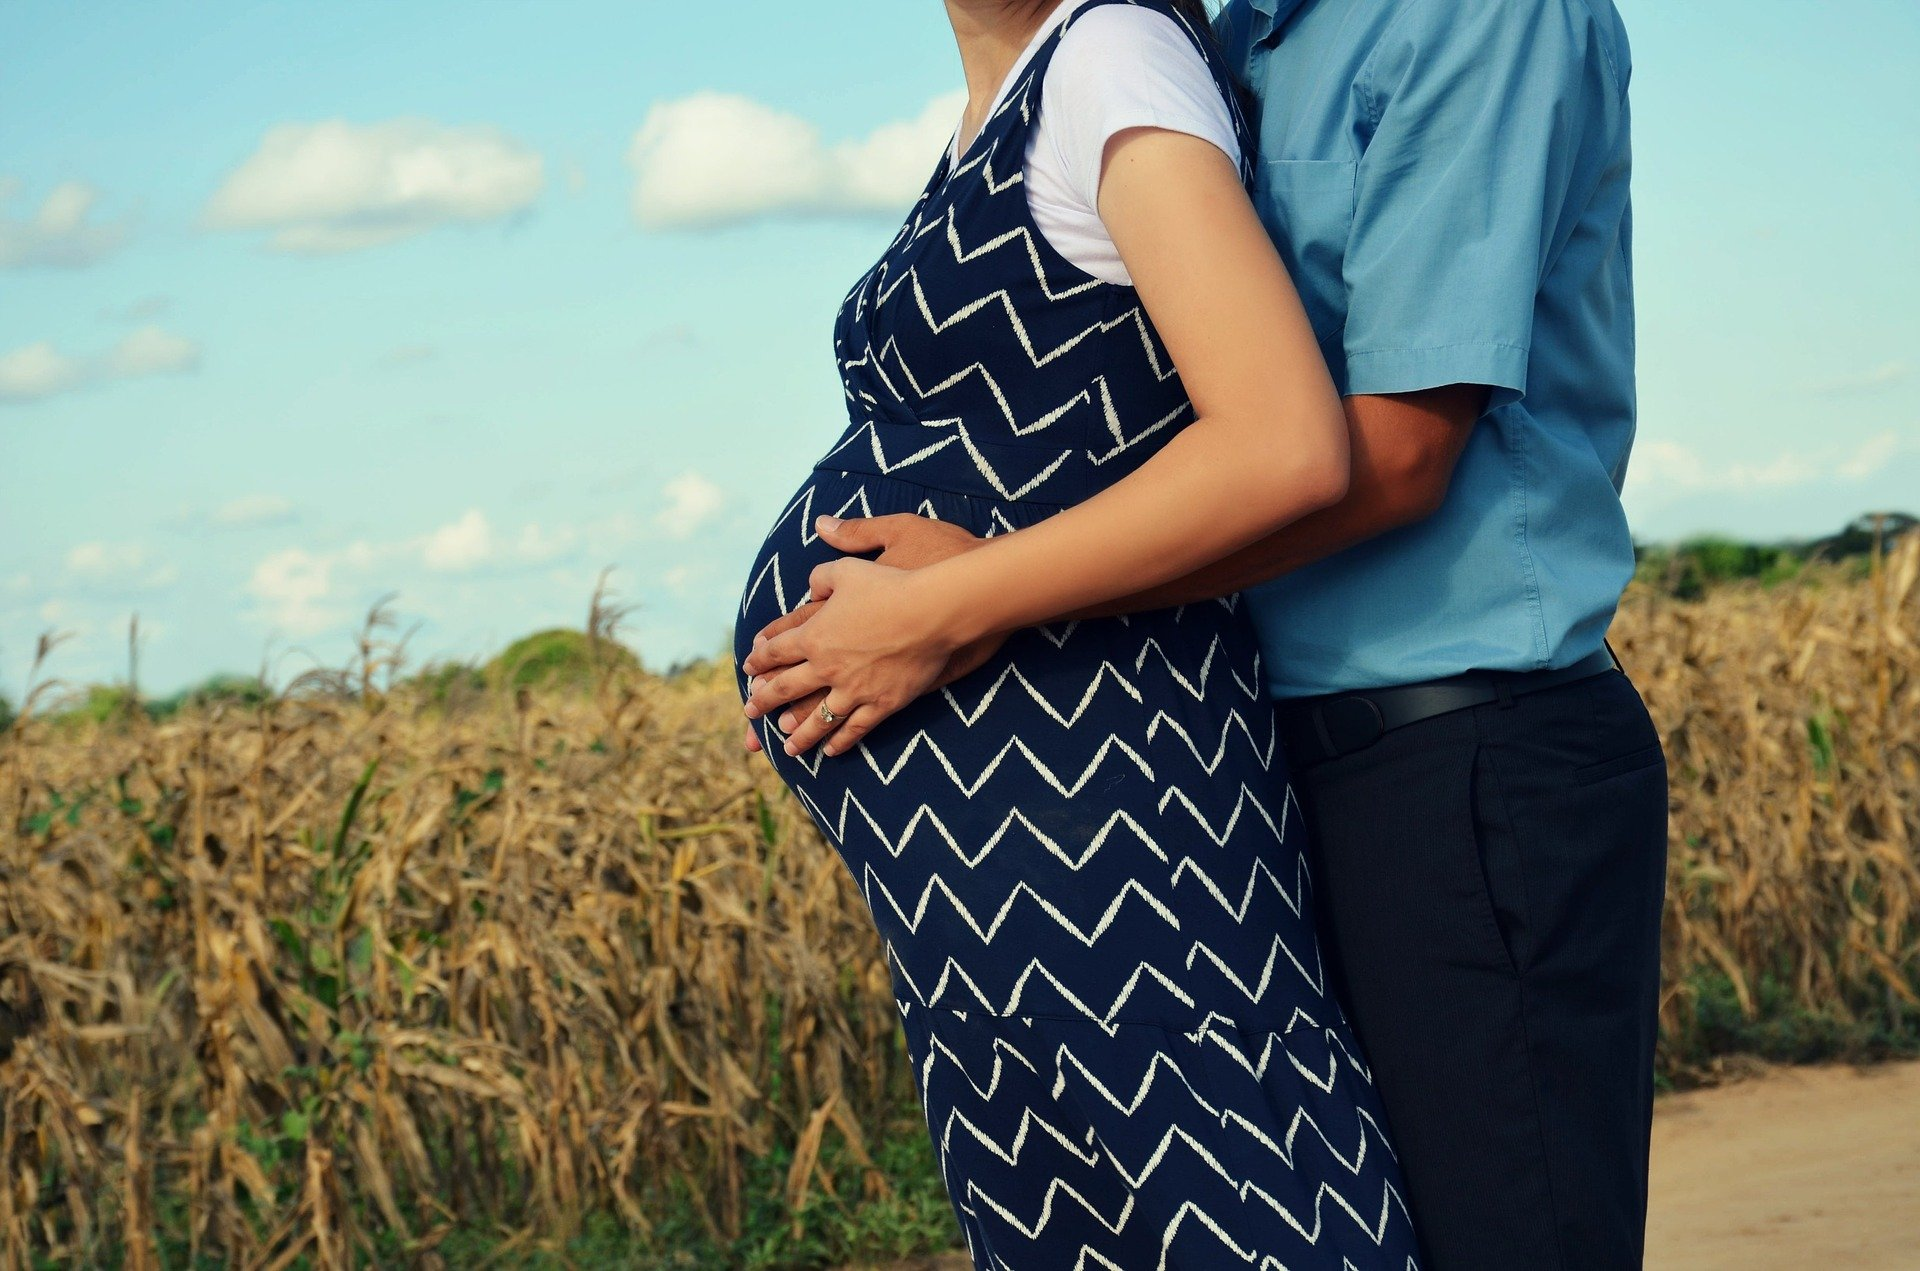 A pregnant couple standing outdoors.   Source: Pixabay.